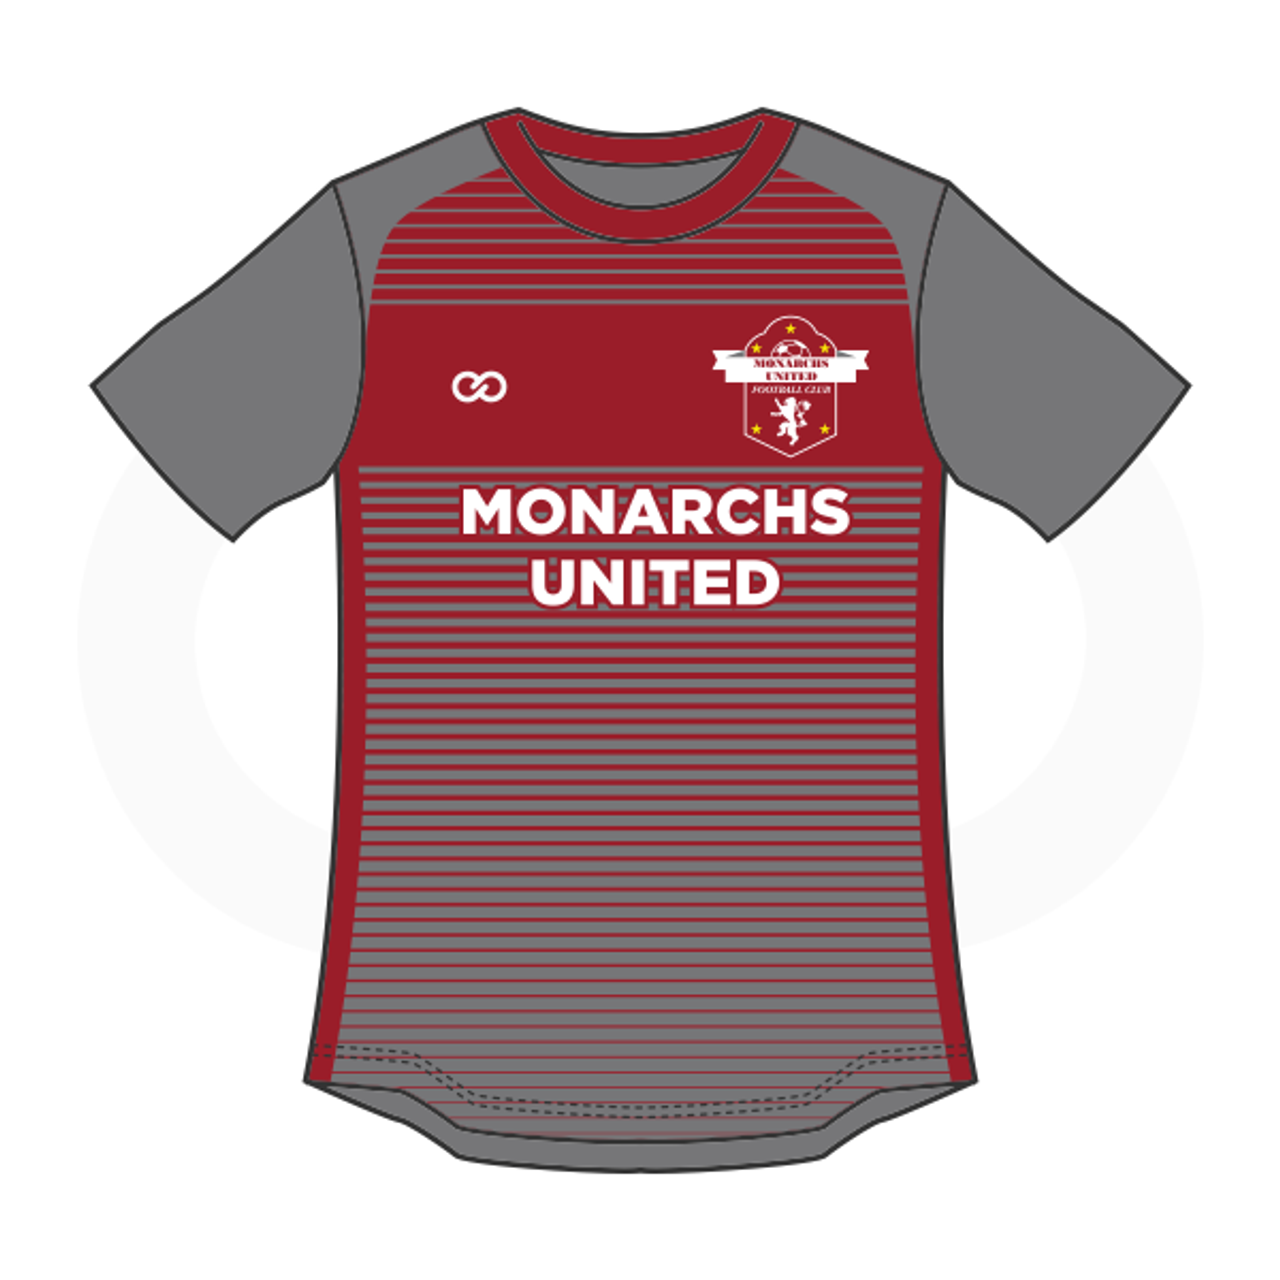 Monarchs United Soccer Jersey - Grey - Wooter Apparel d1ee00ca8